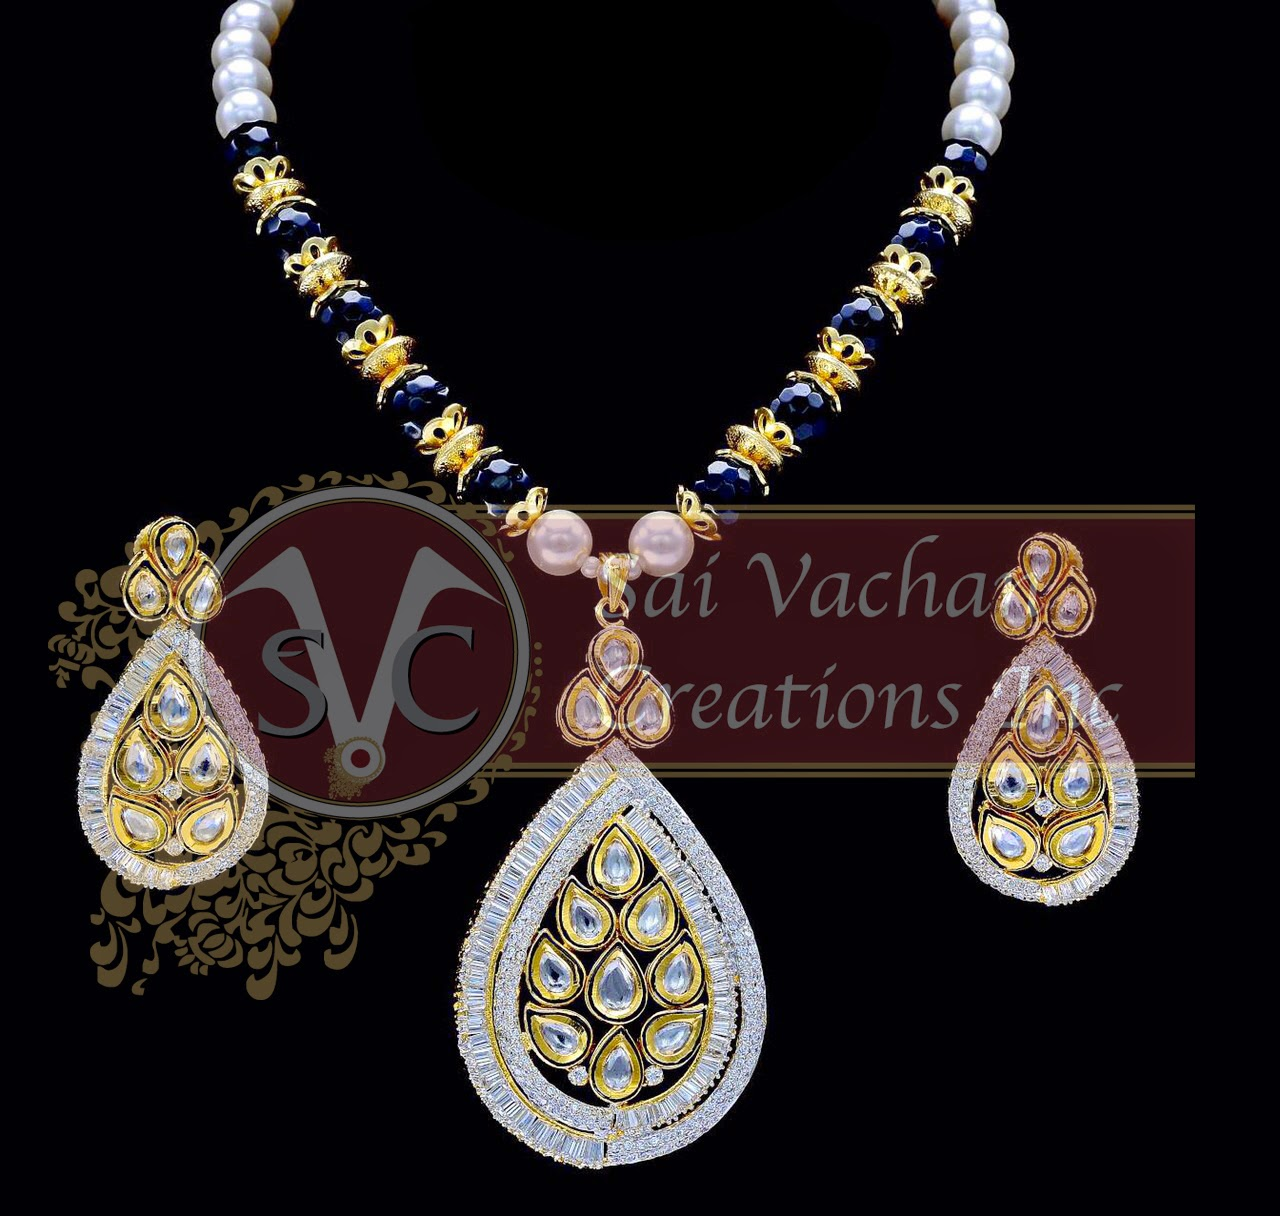 Canada Based Worlds Largest Collections of Jewellery Company Offers